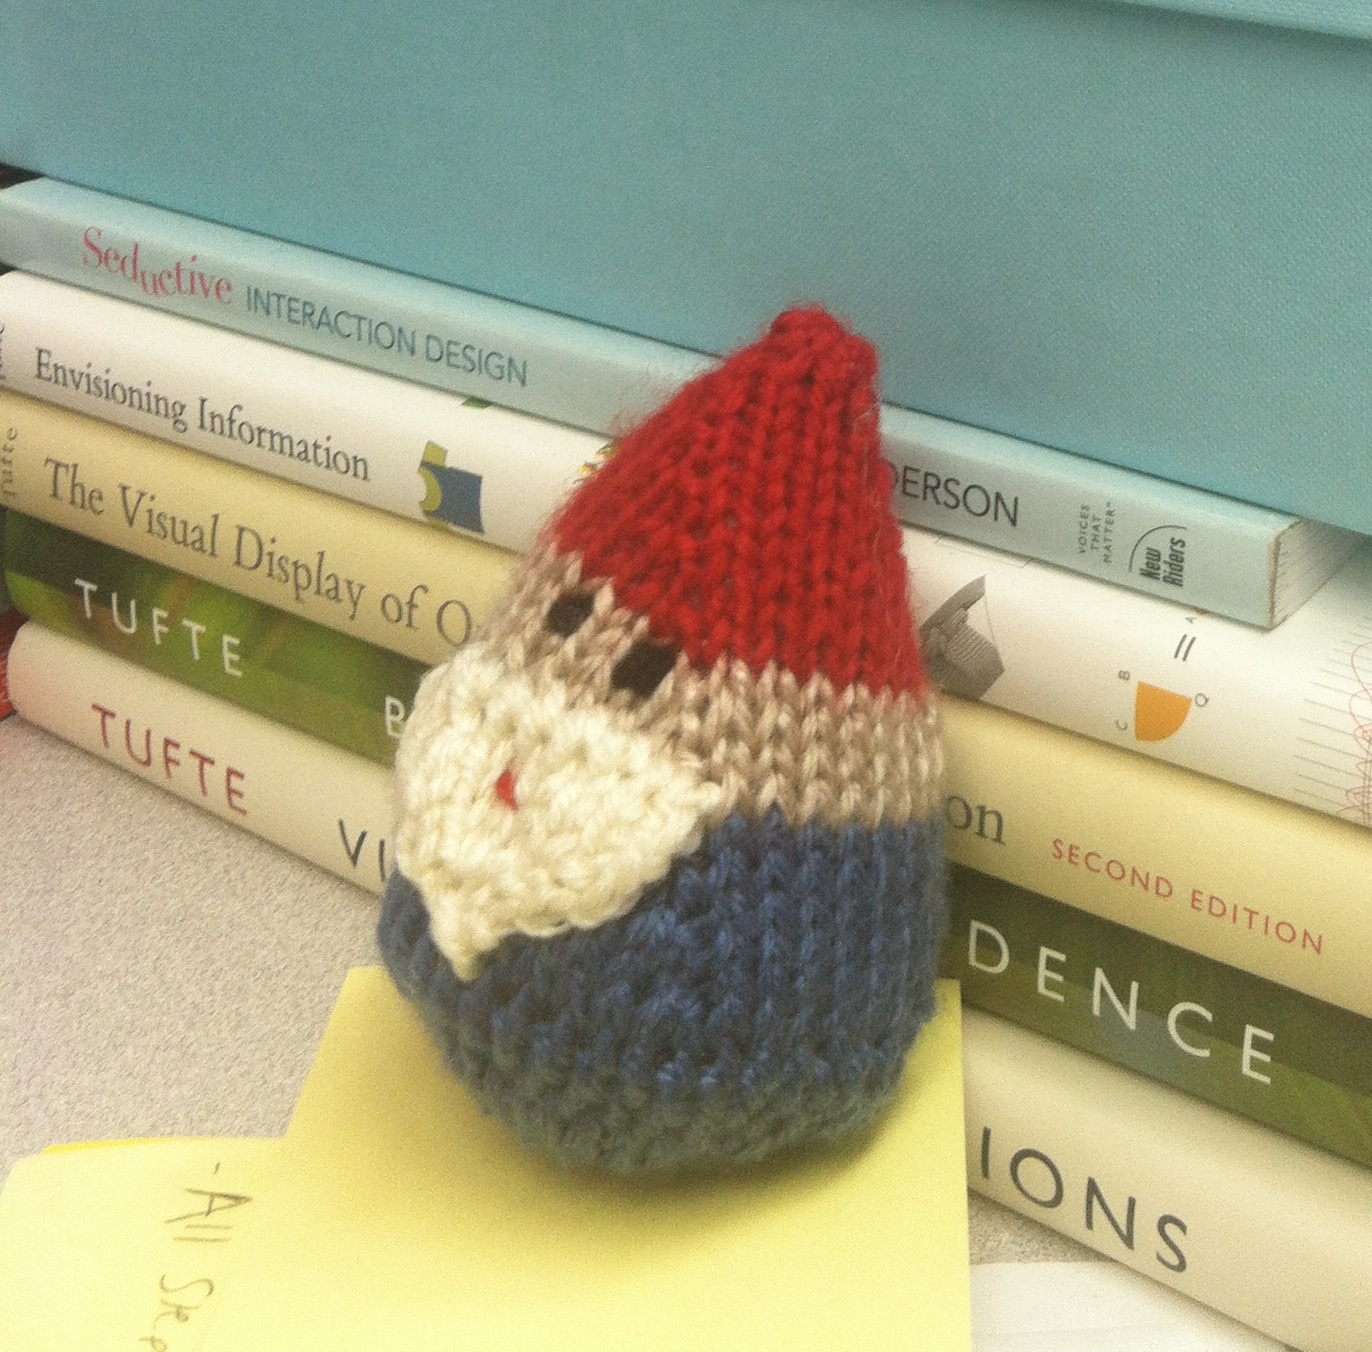 Modled after the Amelie gnome - a great travel companion.